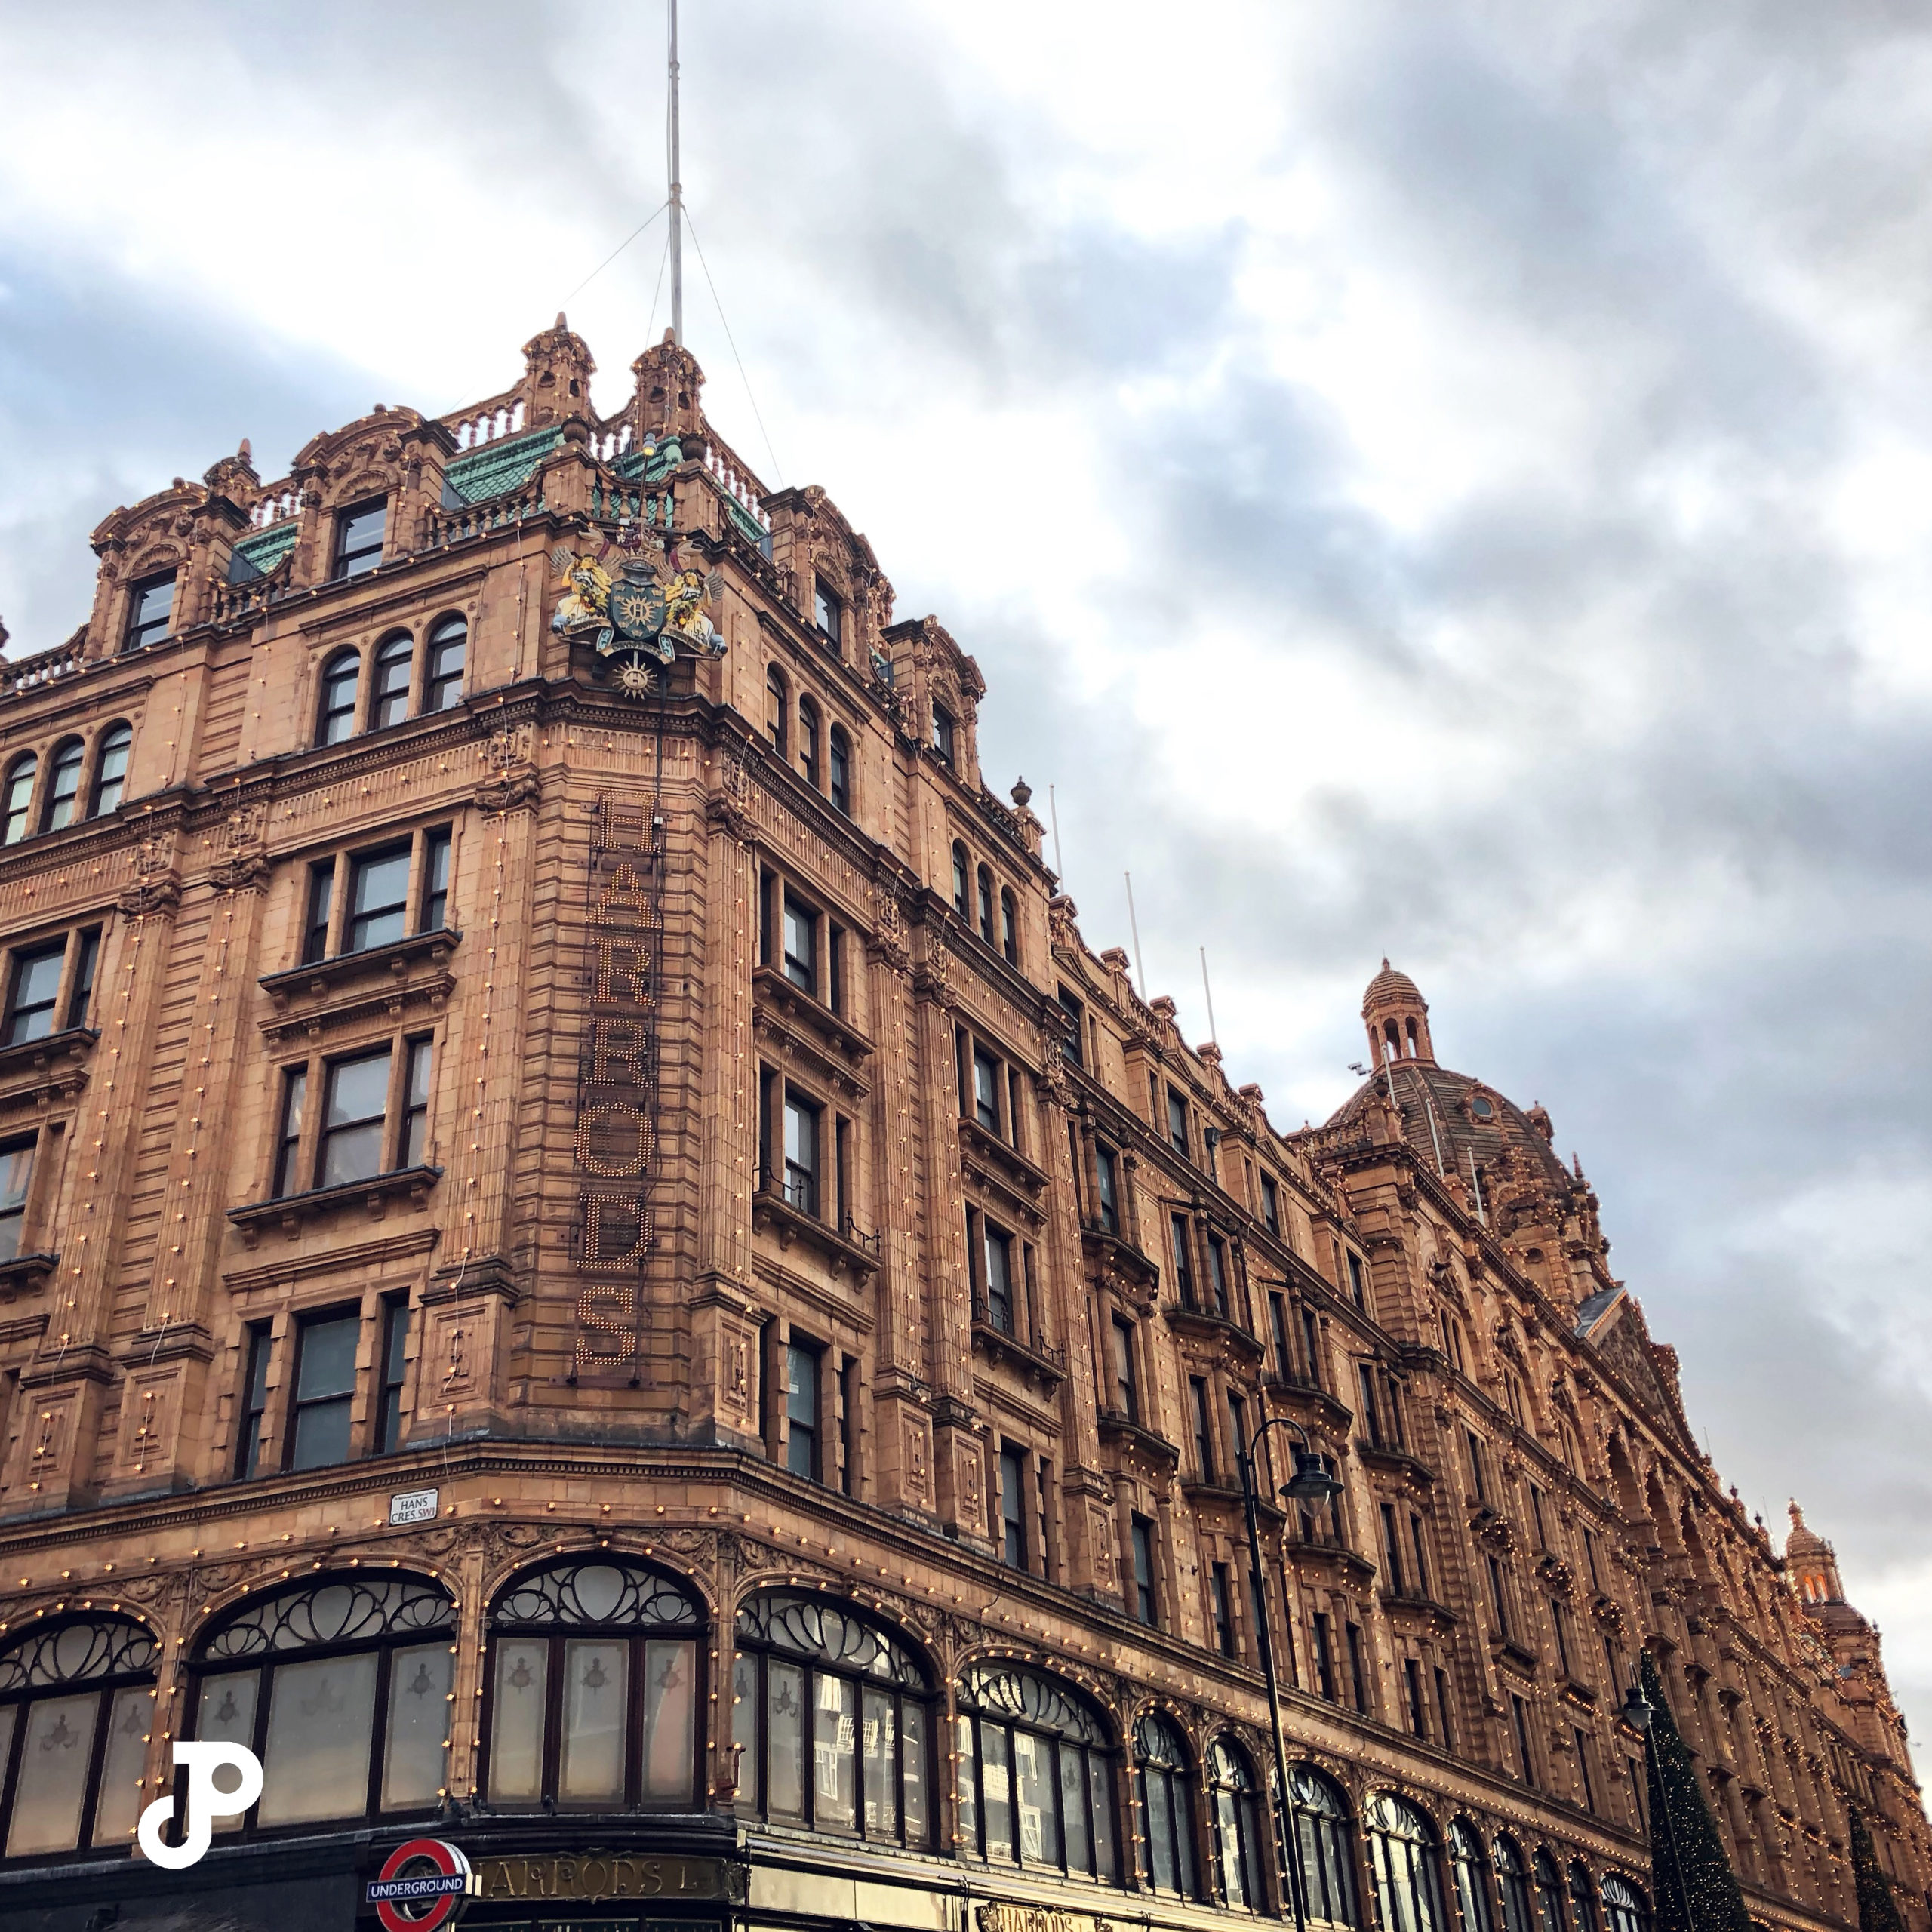 an outside view of Harrods, London